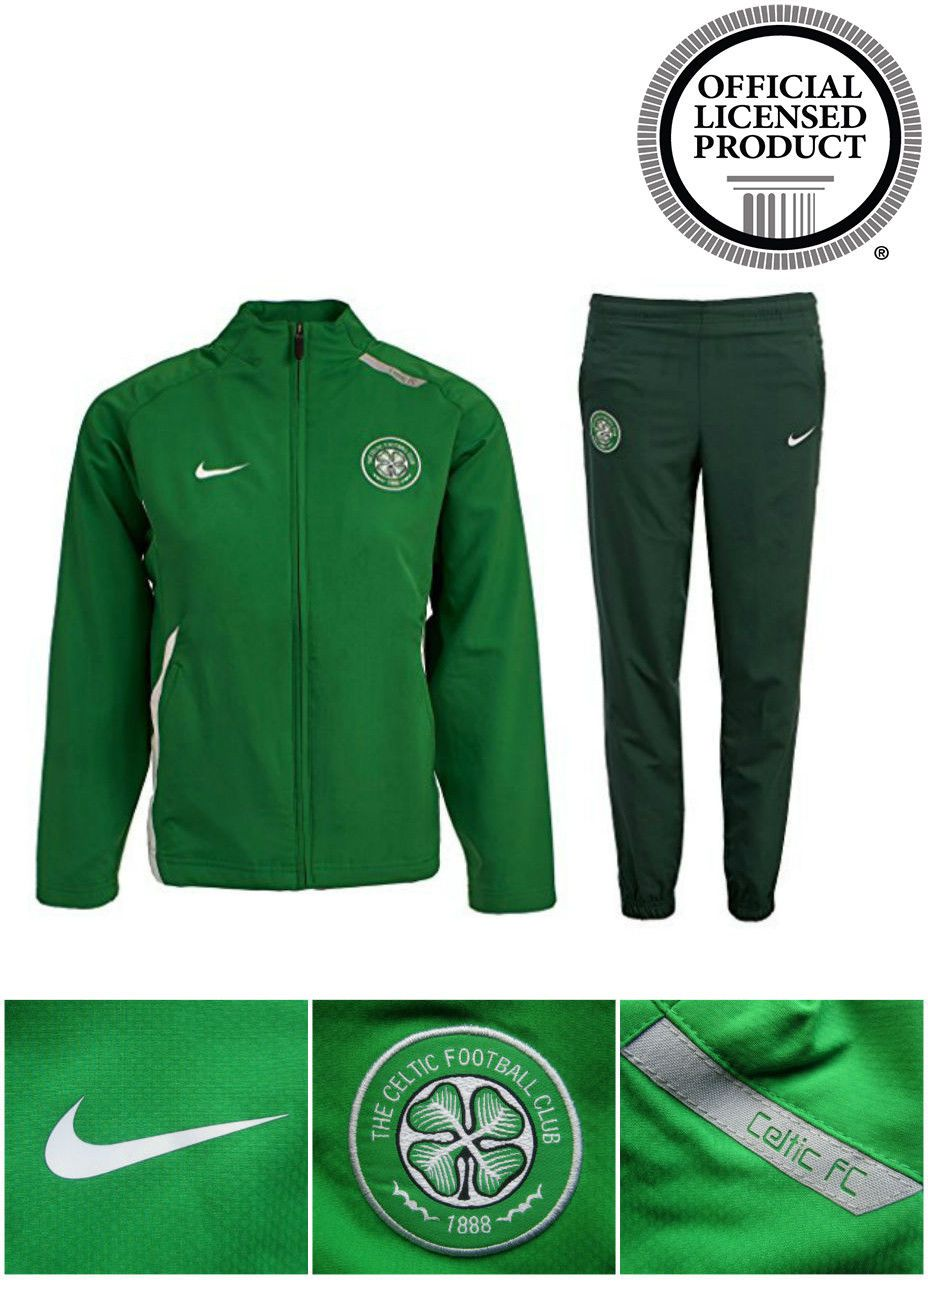 Officially Licenced Celtic Football Club Junior Fan track suit. Green  embarking Celtic s Image   History. A young Fan s possession. 3e6eb661e